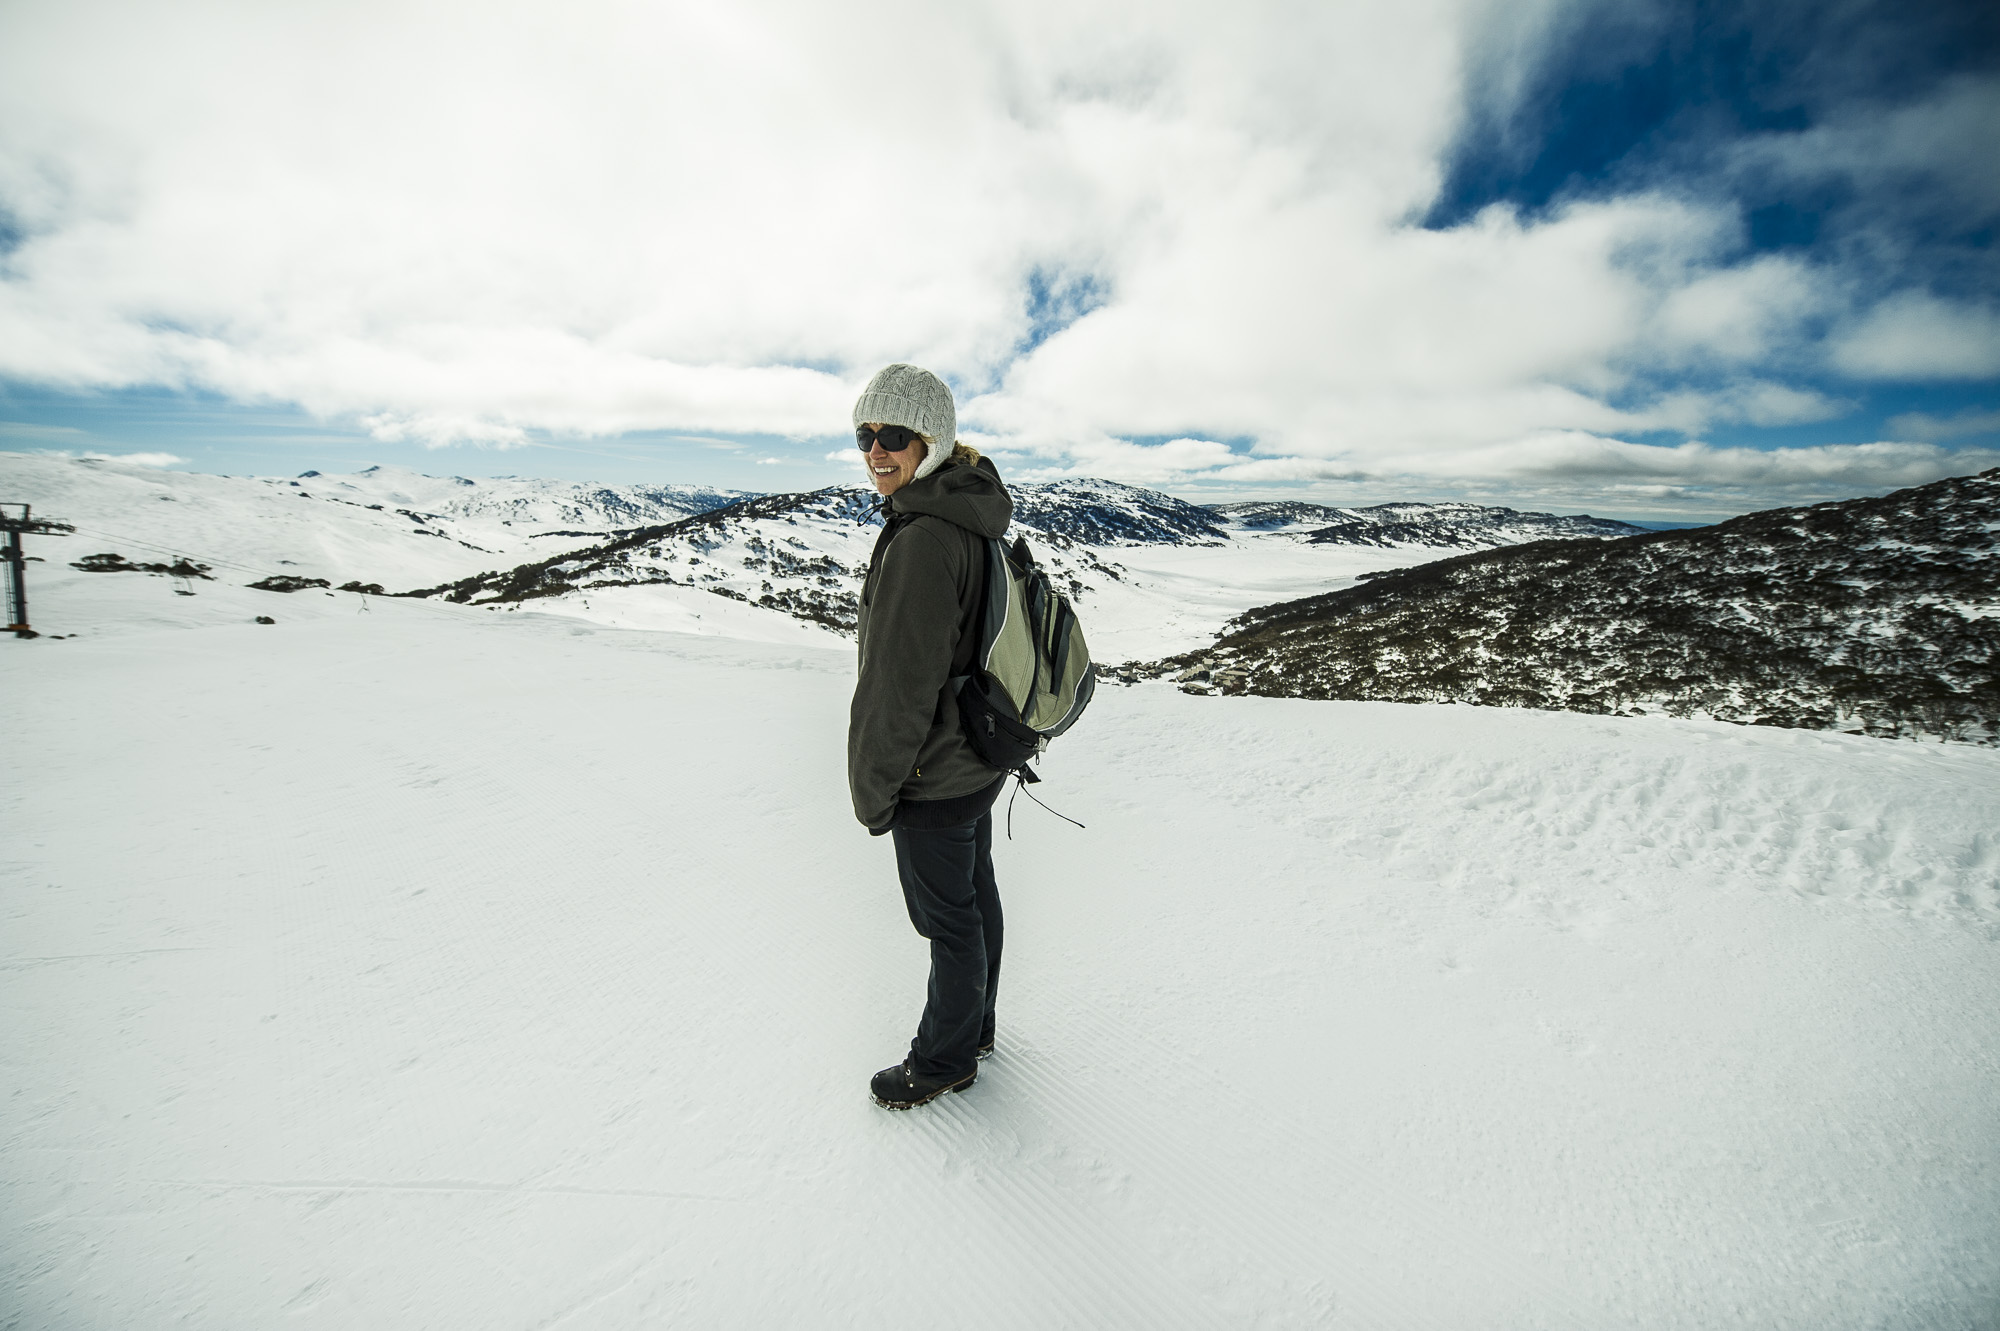 Location scouting for the Snowy Mountains Winter campaign